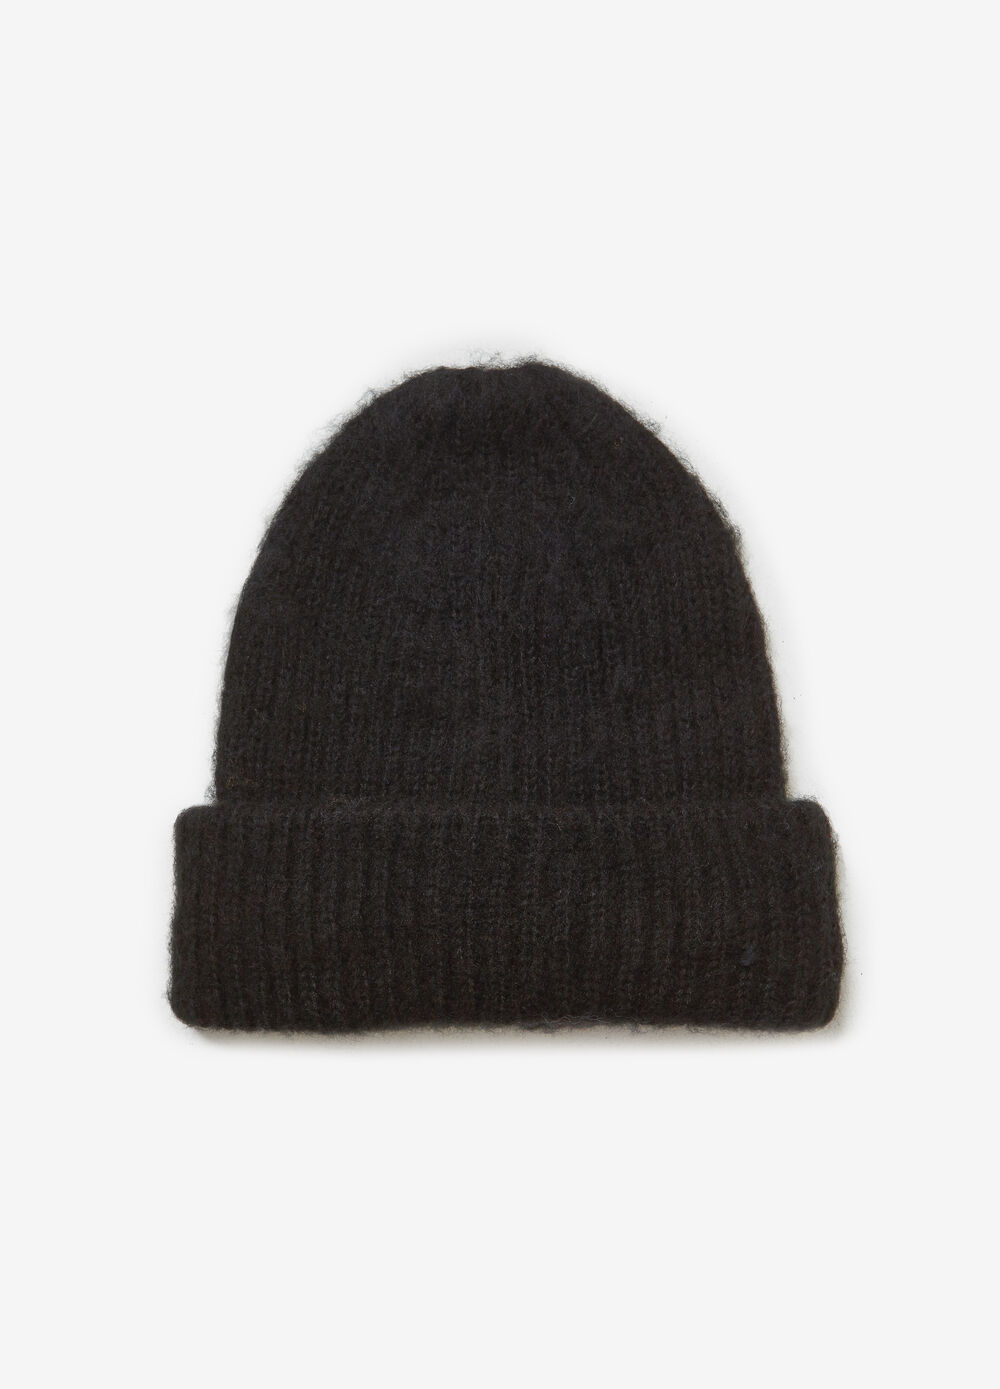 Hat with braided weave